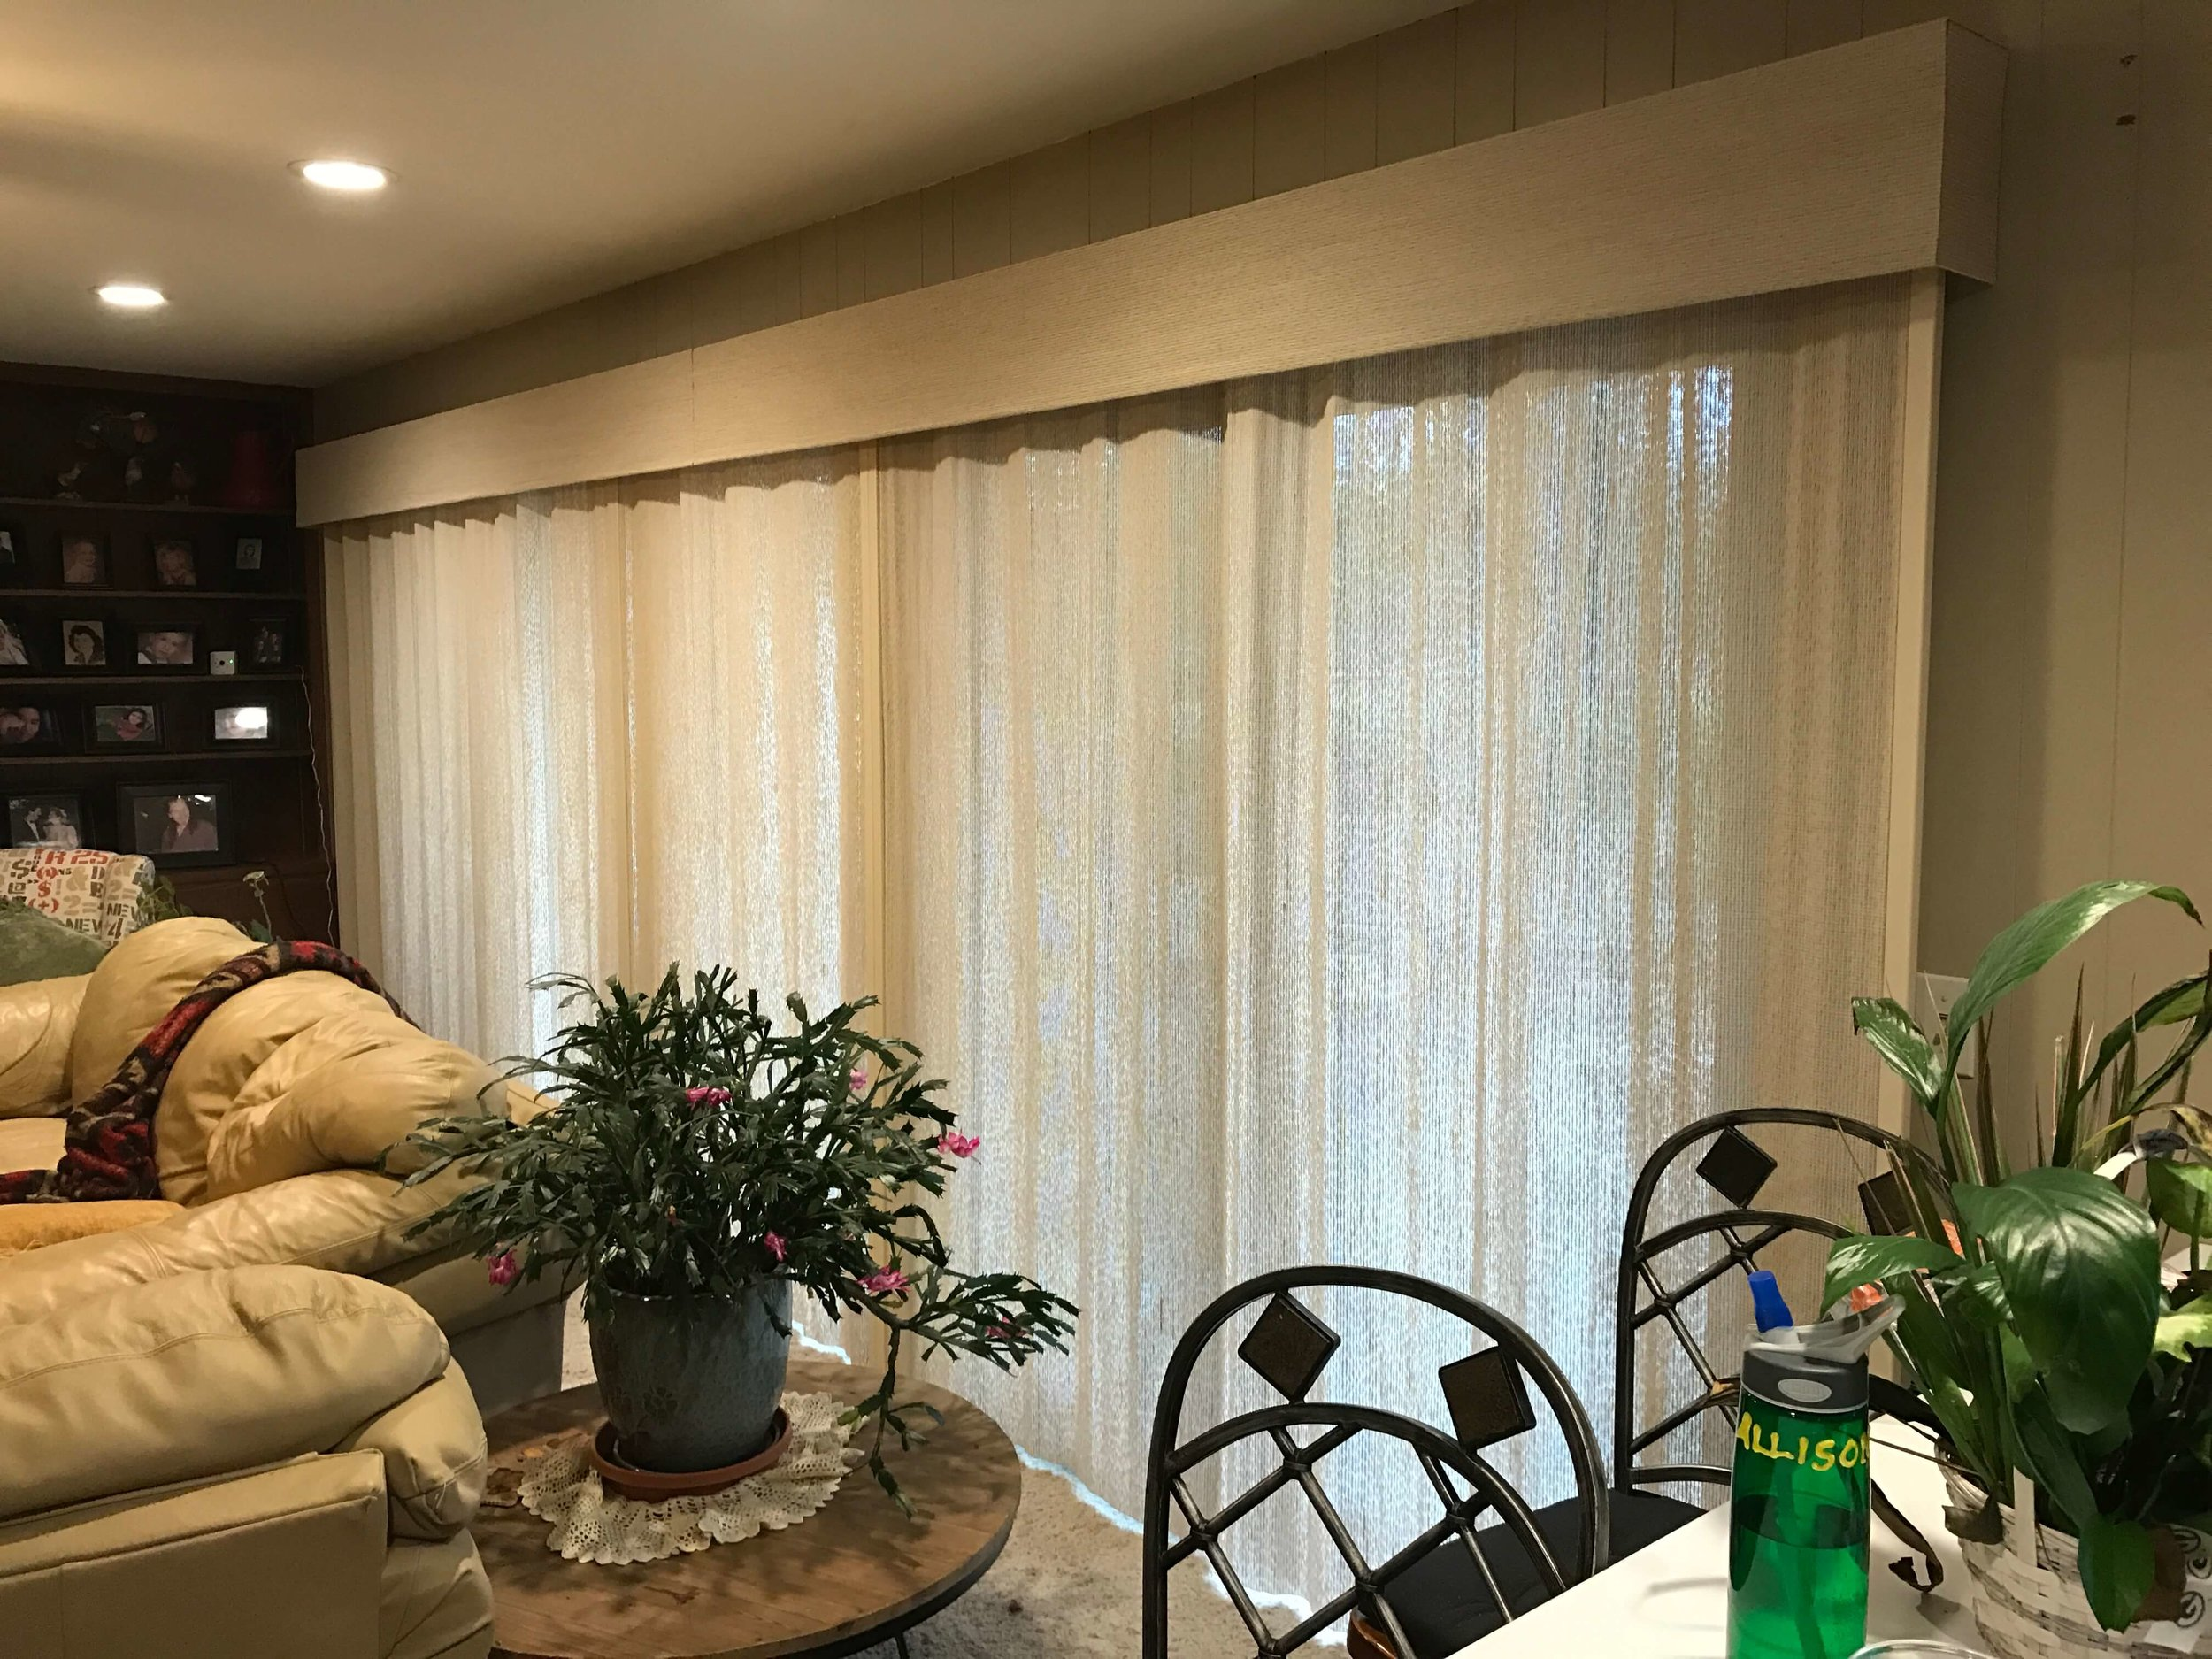 custom-window-treatments-coverings-cross-plains-wi.JPG